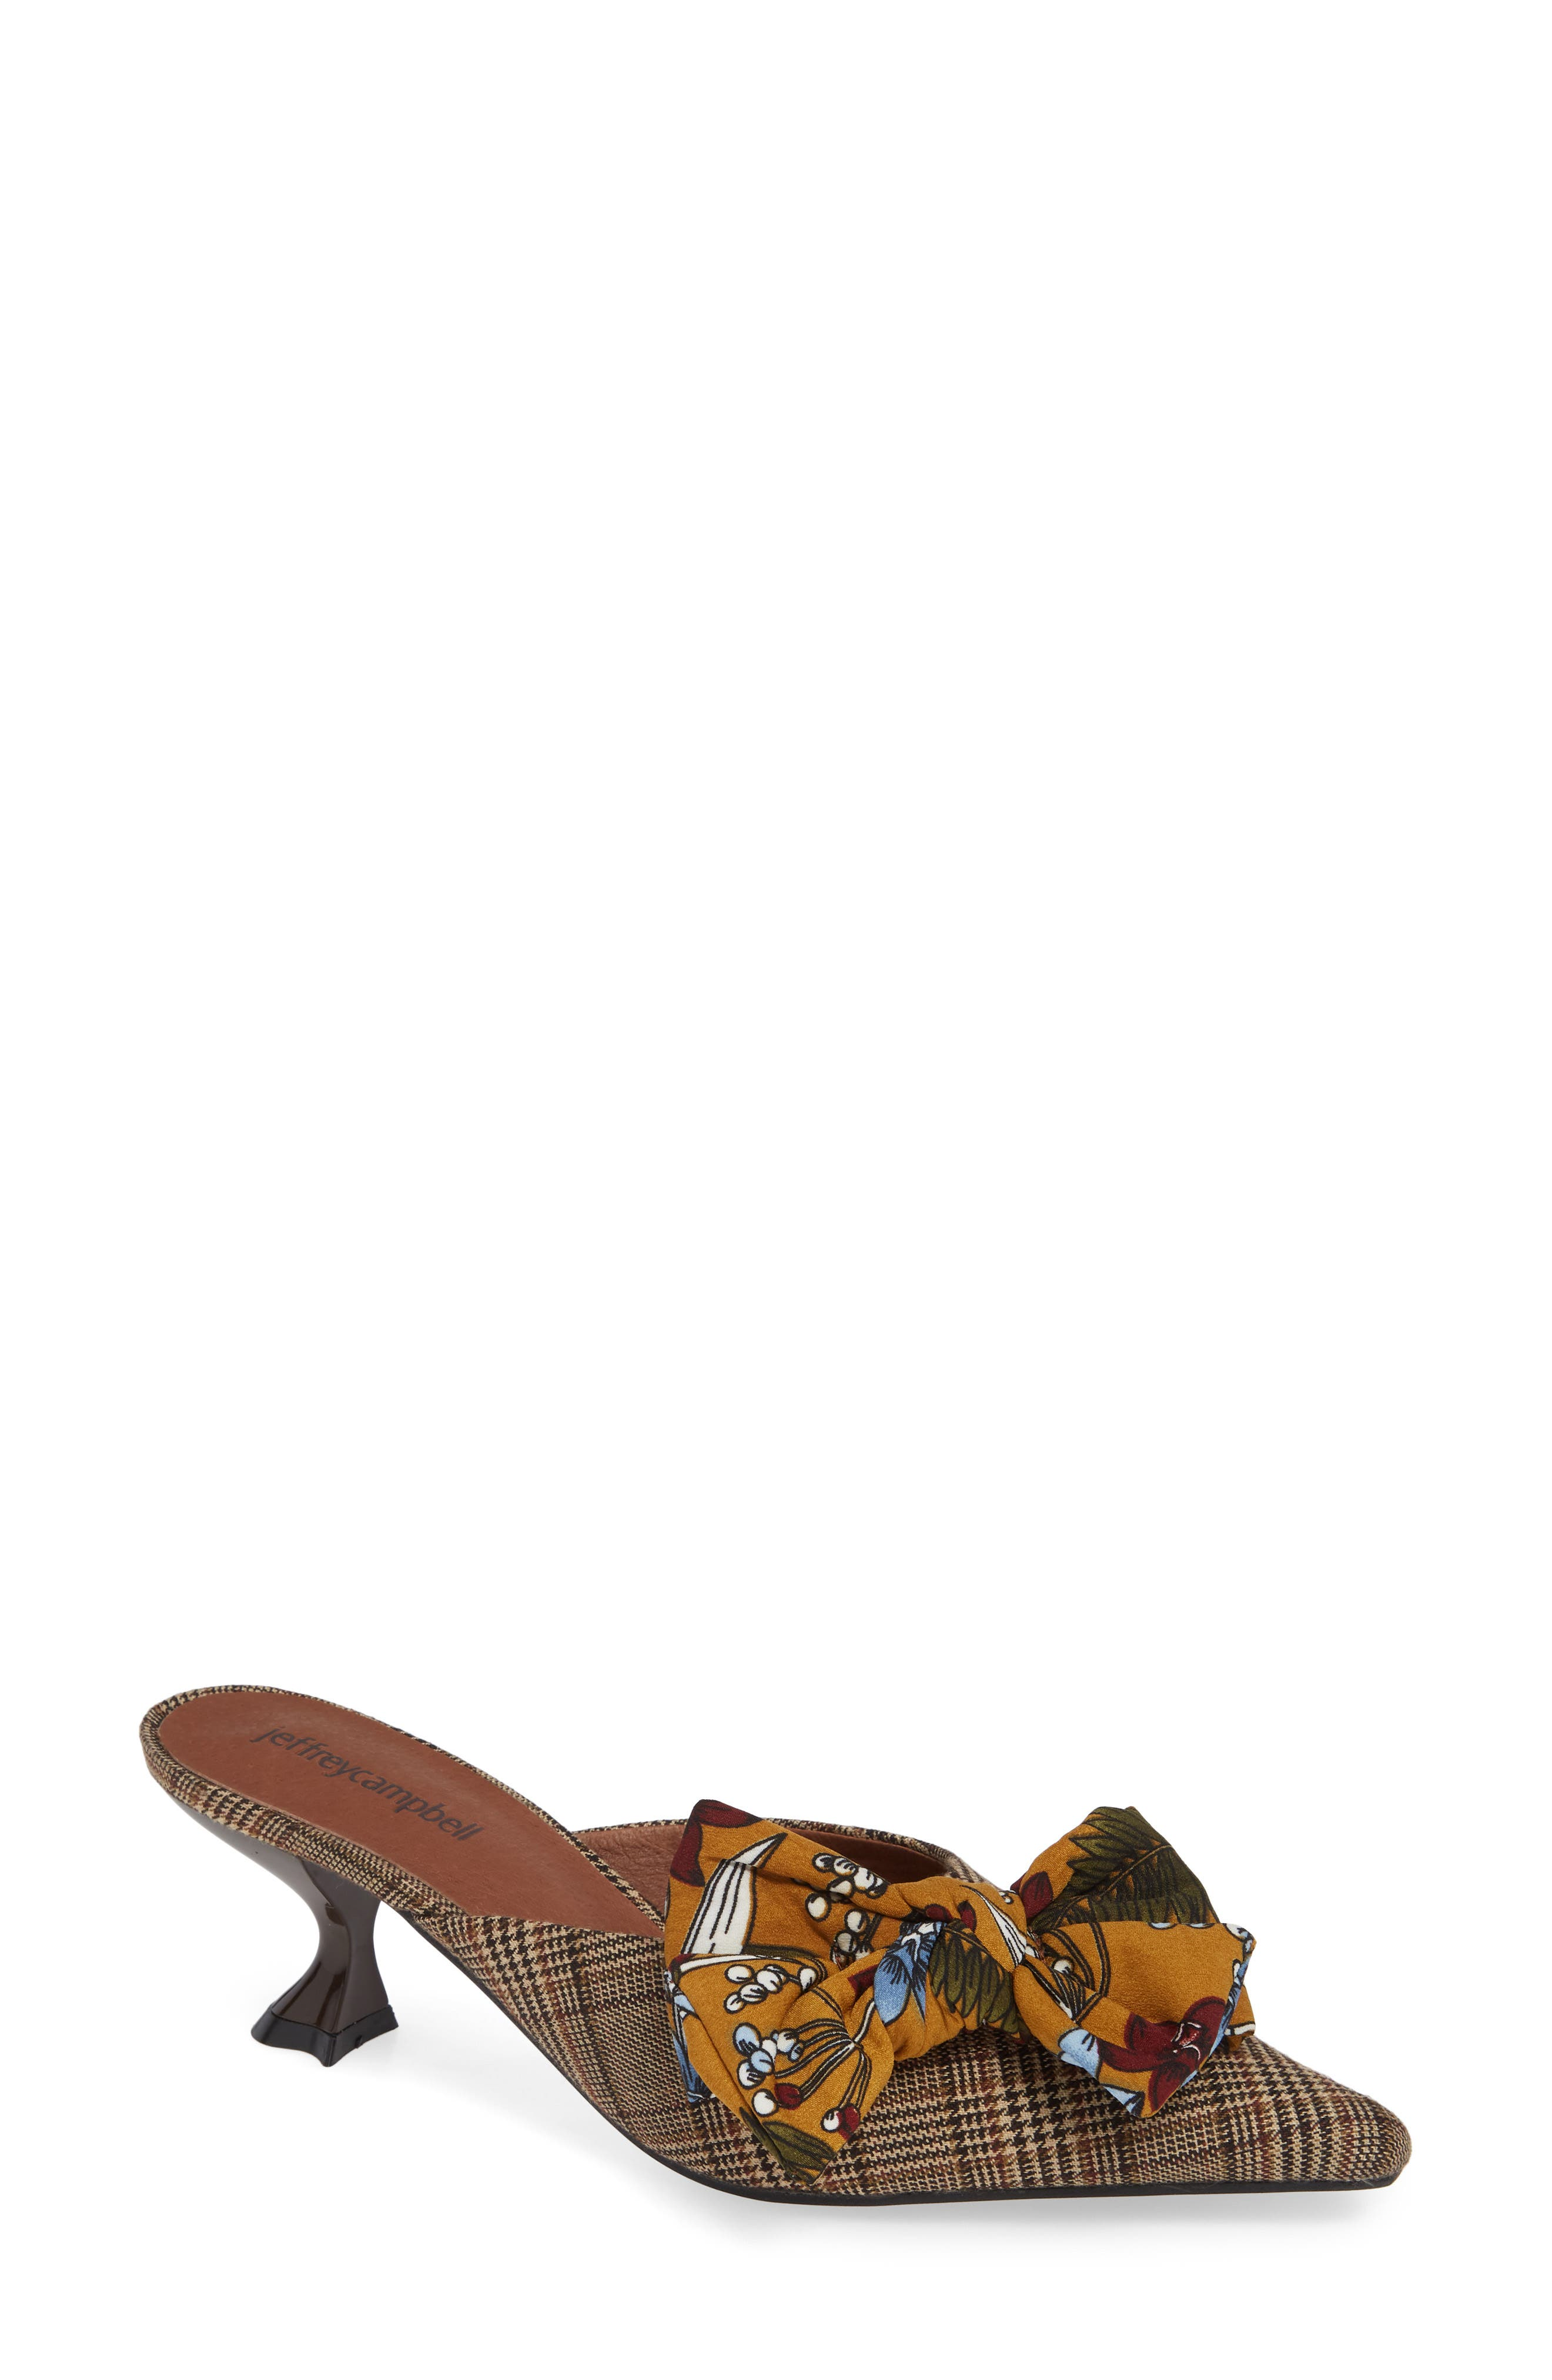 Adorn Pointy Toe Mule,                             Main thumbnail 1, color,                             MUSTARD/ NAVY FLORAL MULTI